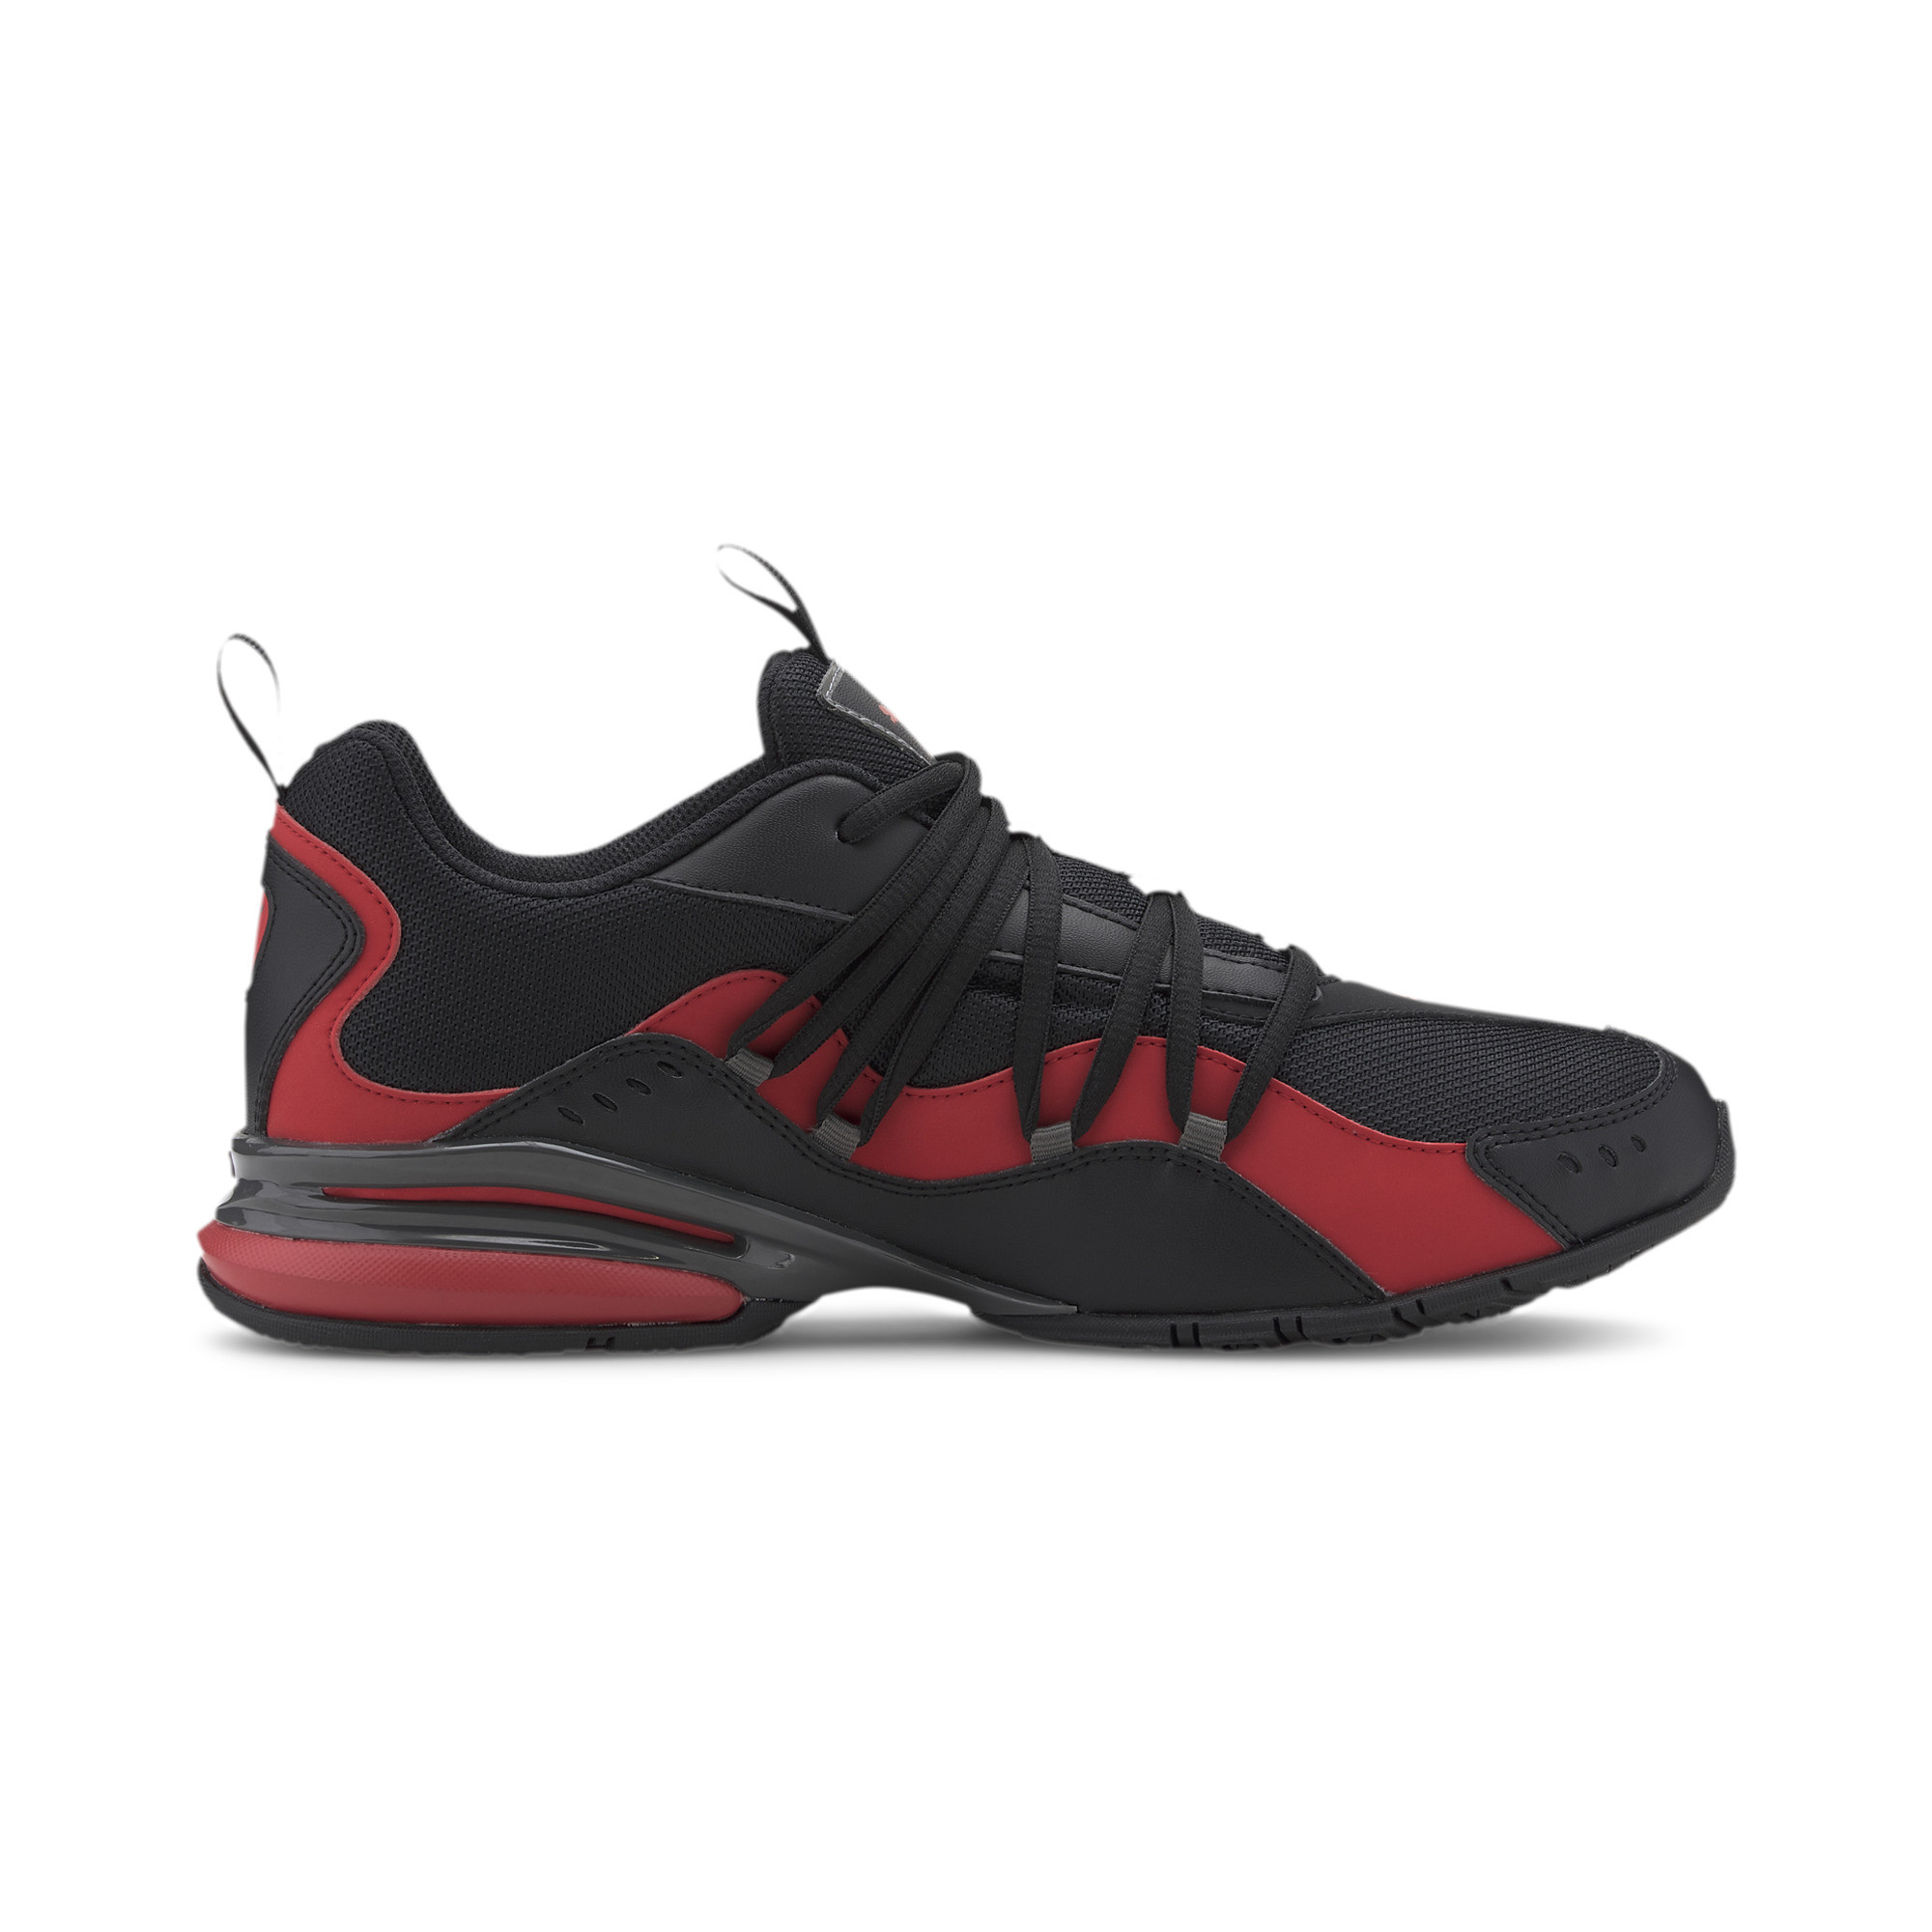 PUMA-Men-039-s-Silverion-Running-Shoes thumbnail 19